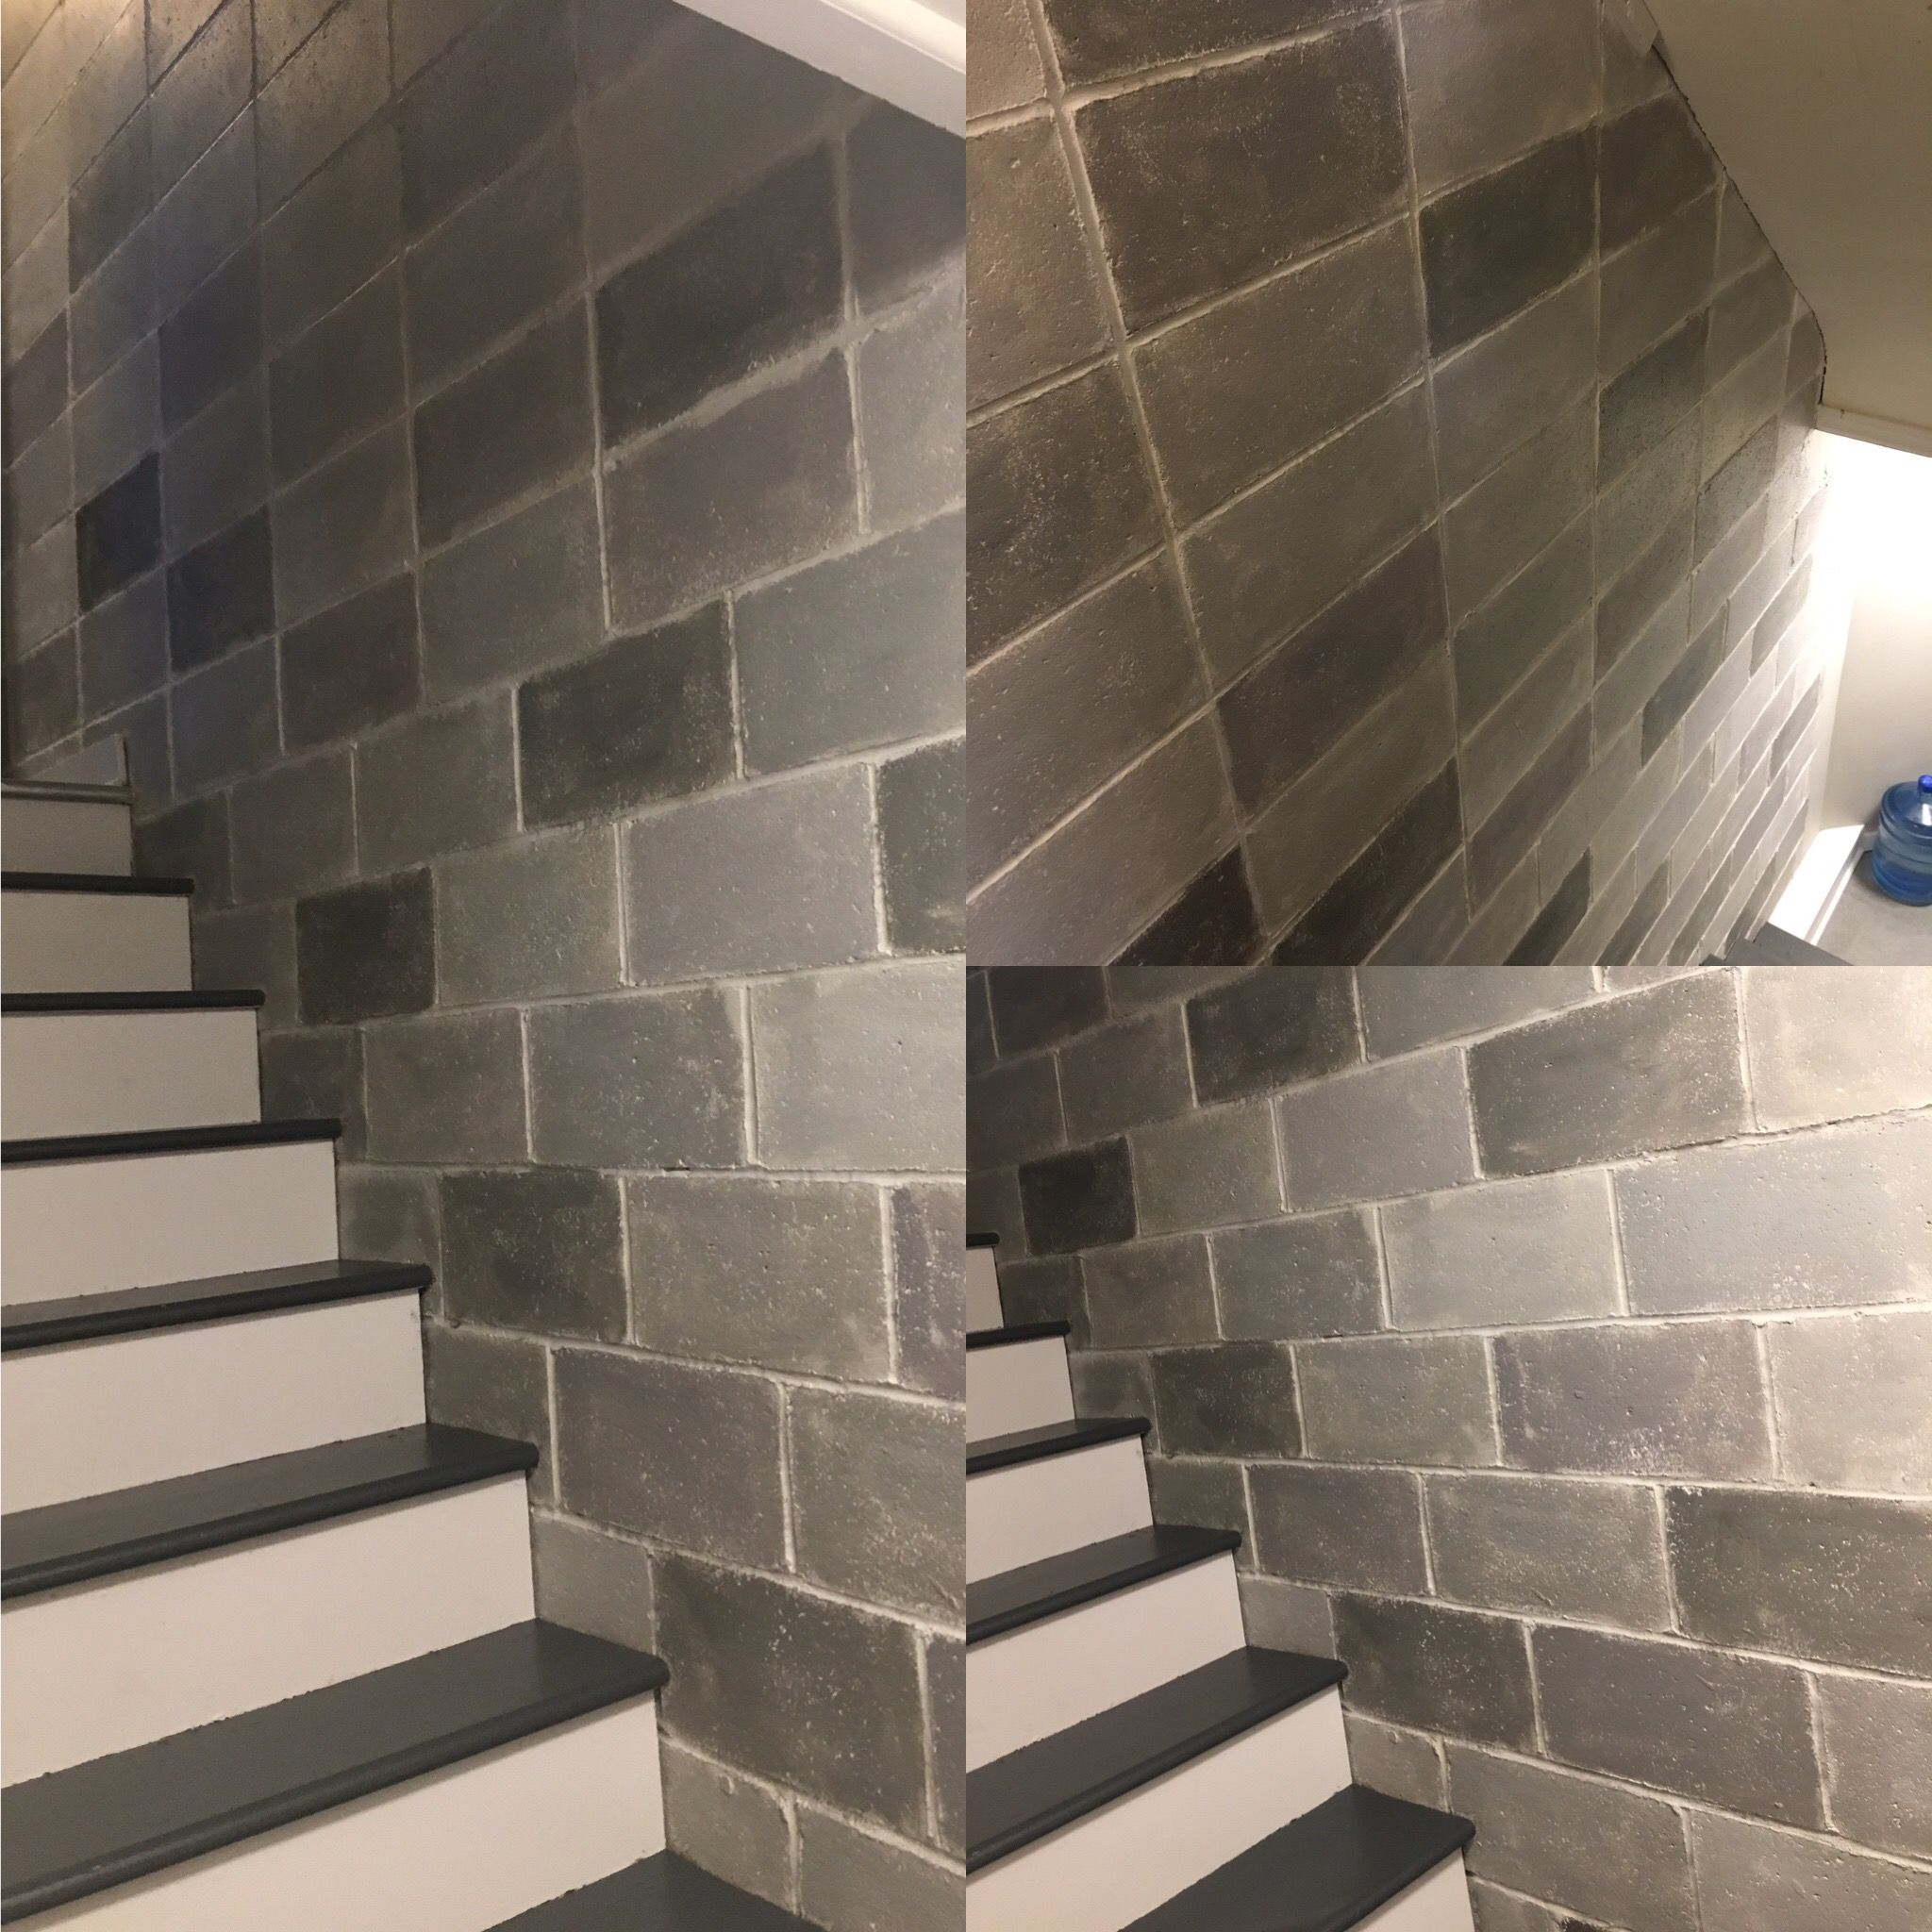 Painted Cinderblock Wall Cinder Block Walls Concrete Block Walls Painting Basement Walls